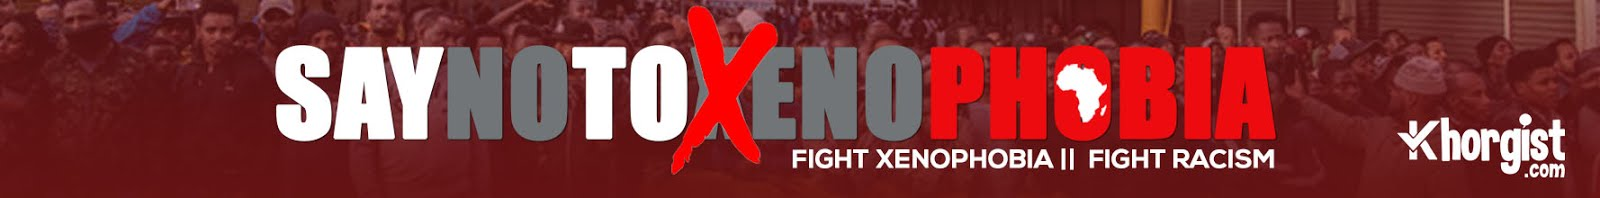 fight xenophobia add